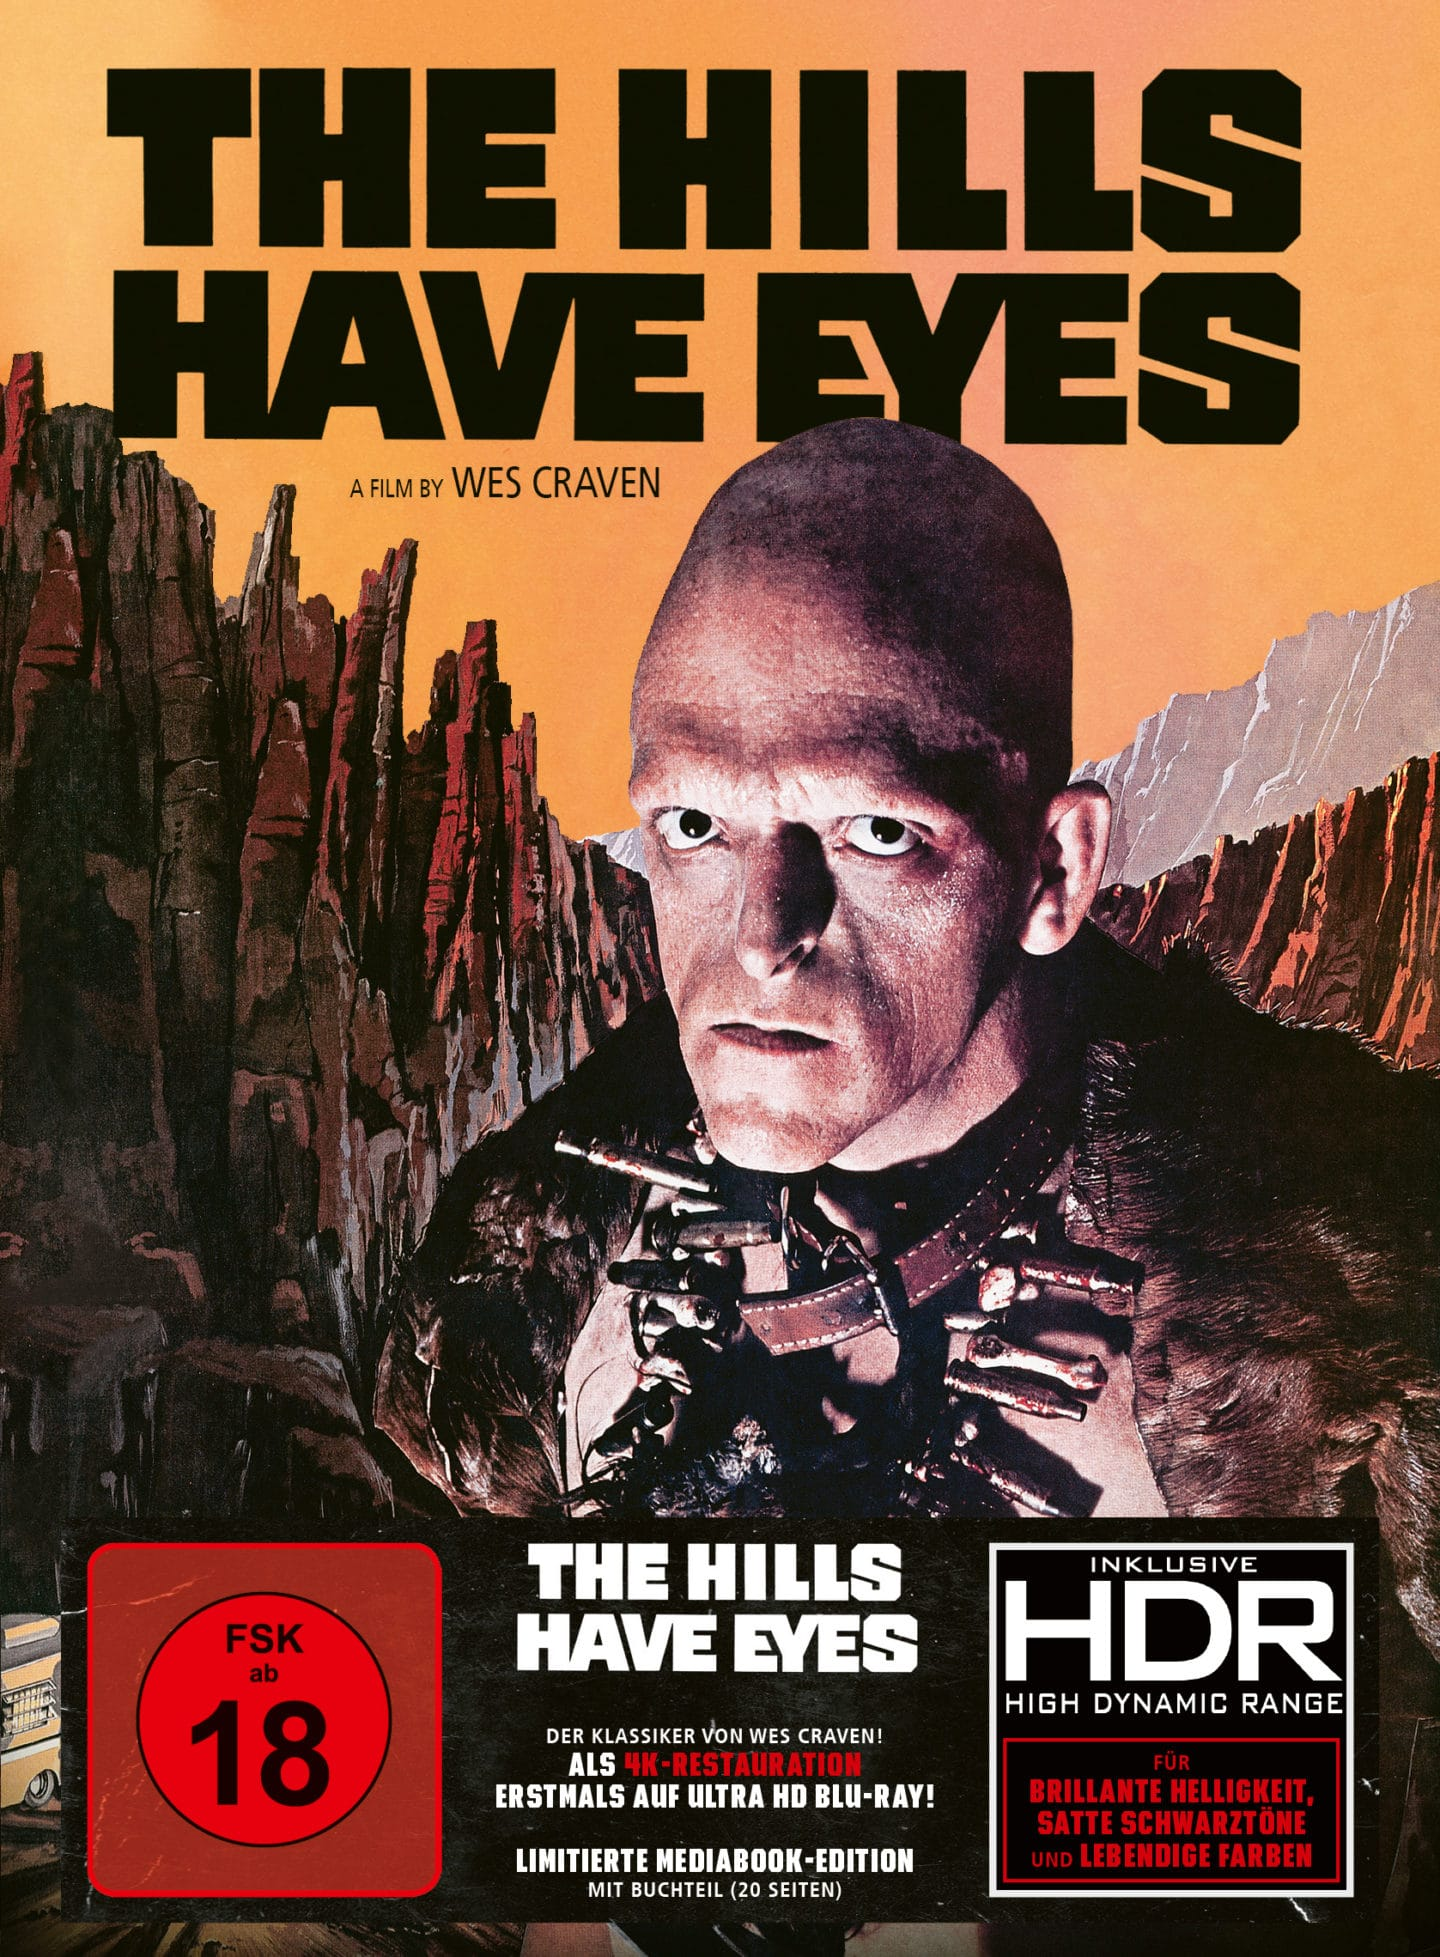 The Hills Have Eyes – Mediabook 4K UHD Bluray HDR